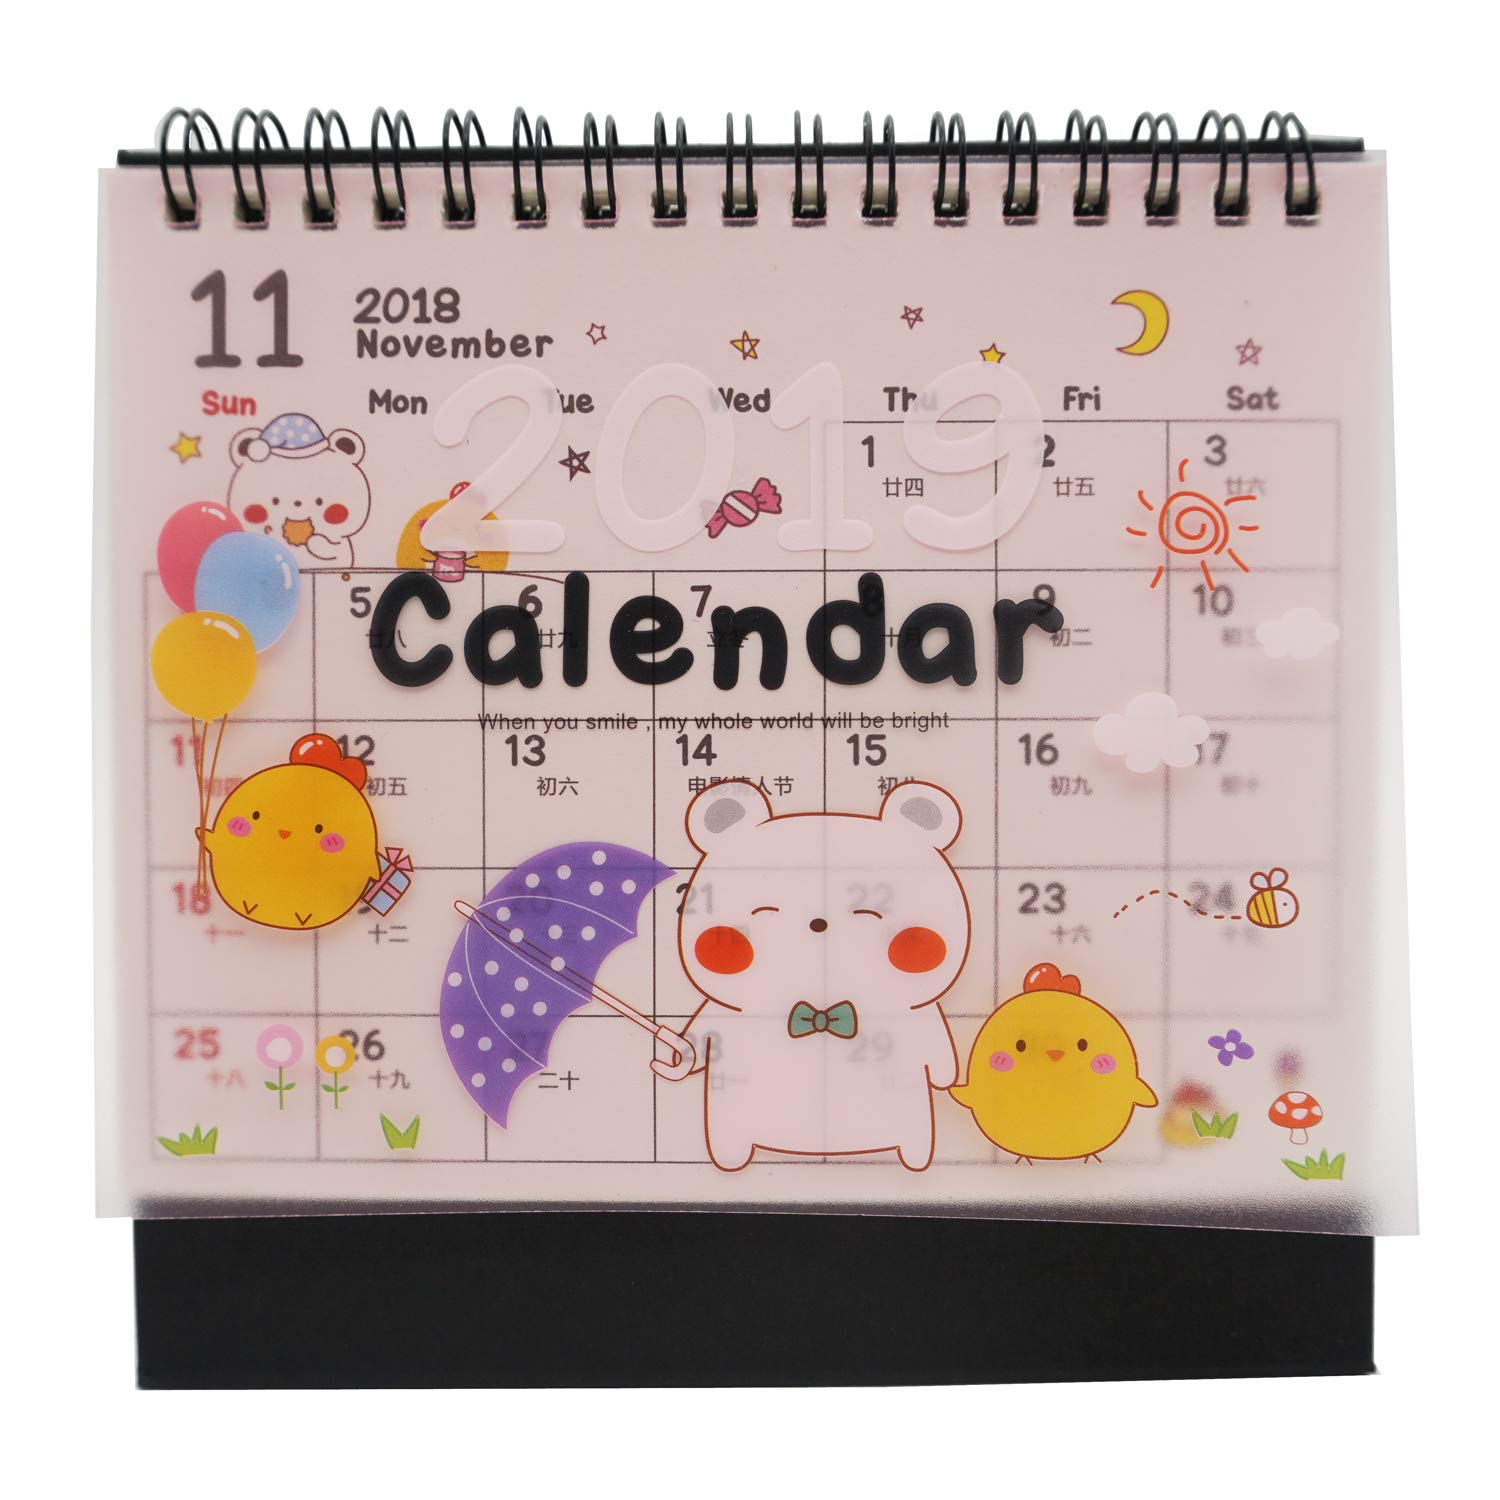 Cute Desk Calendar 2017-2018 Academic Planner Daily Weekly Monthly Yearly Personal Organizer (cat) I2USHOP E1007003_2